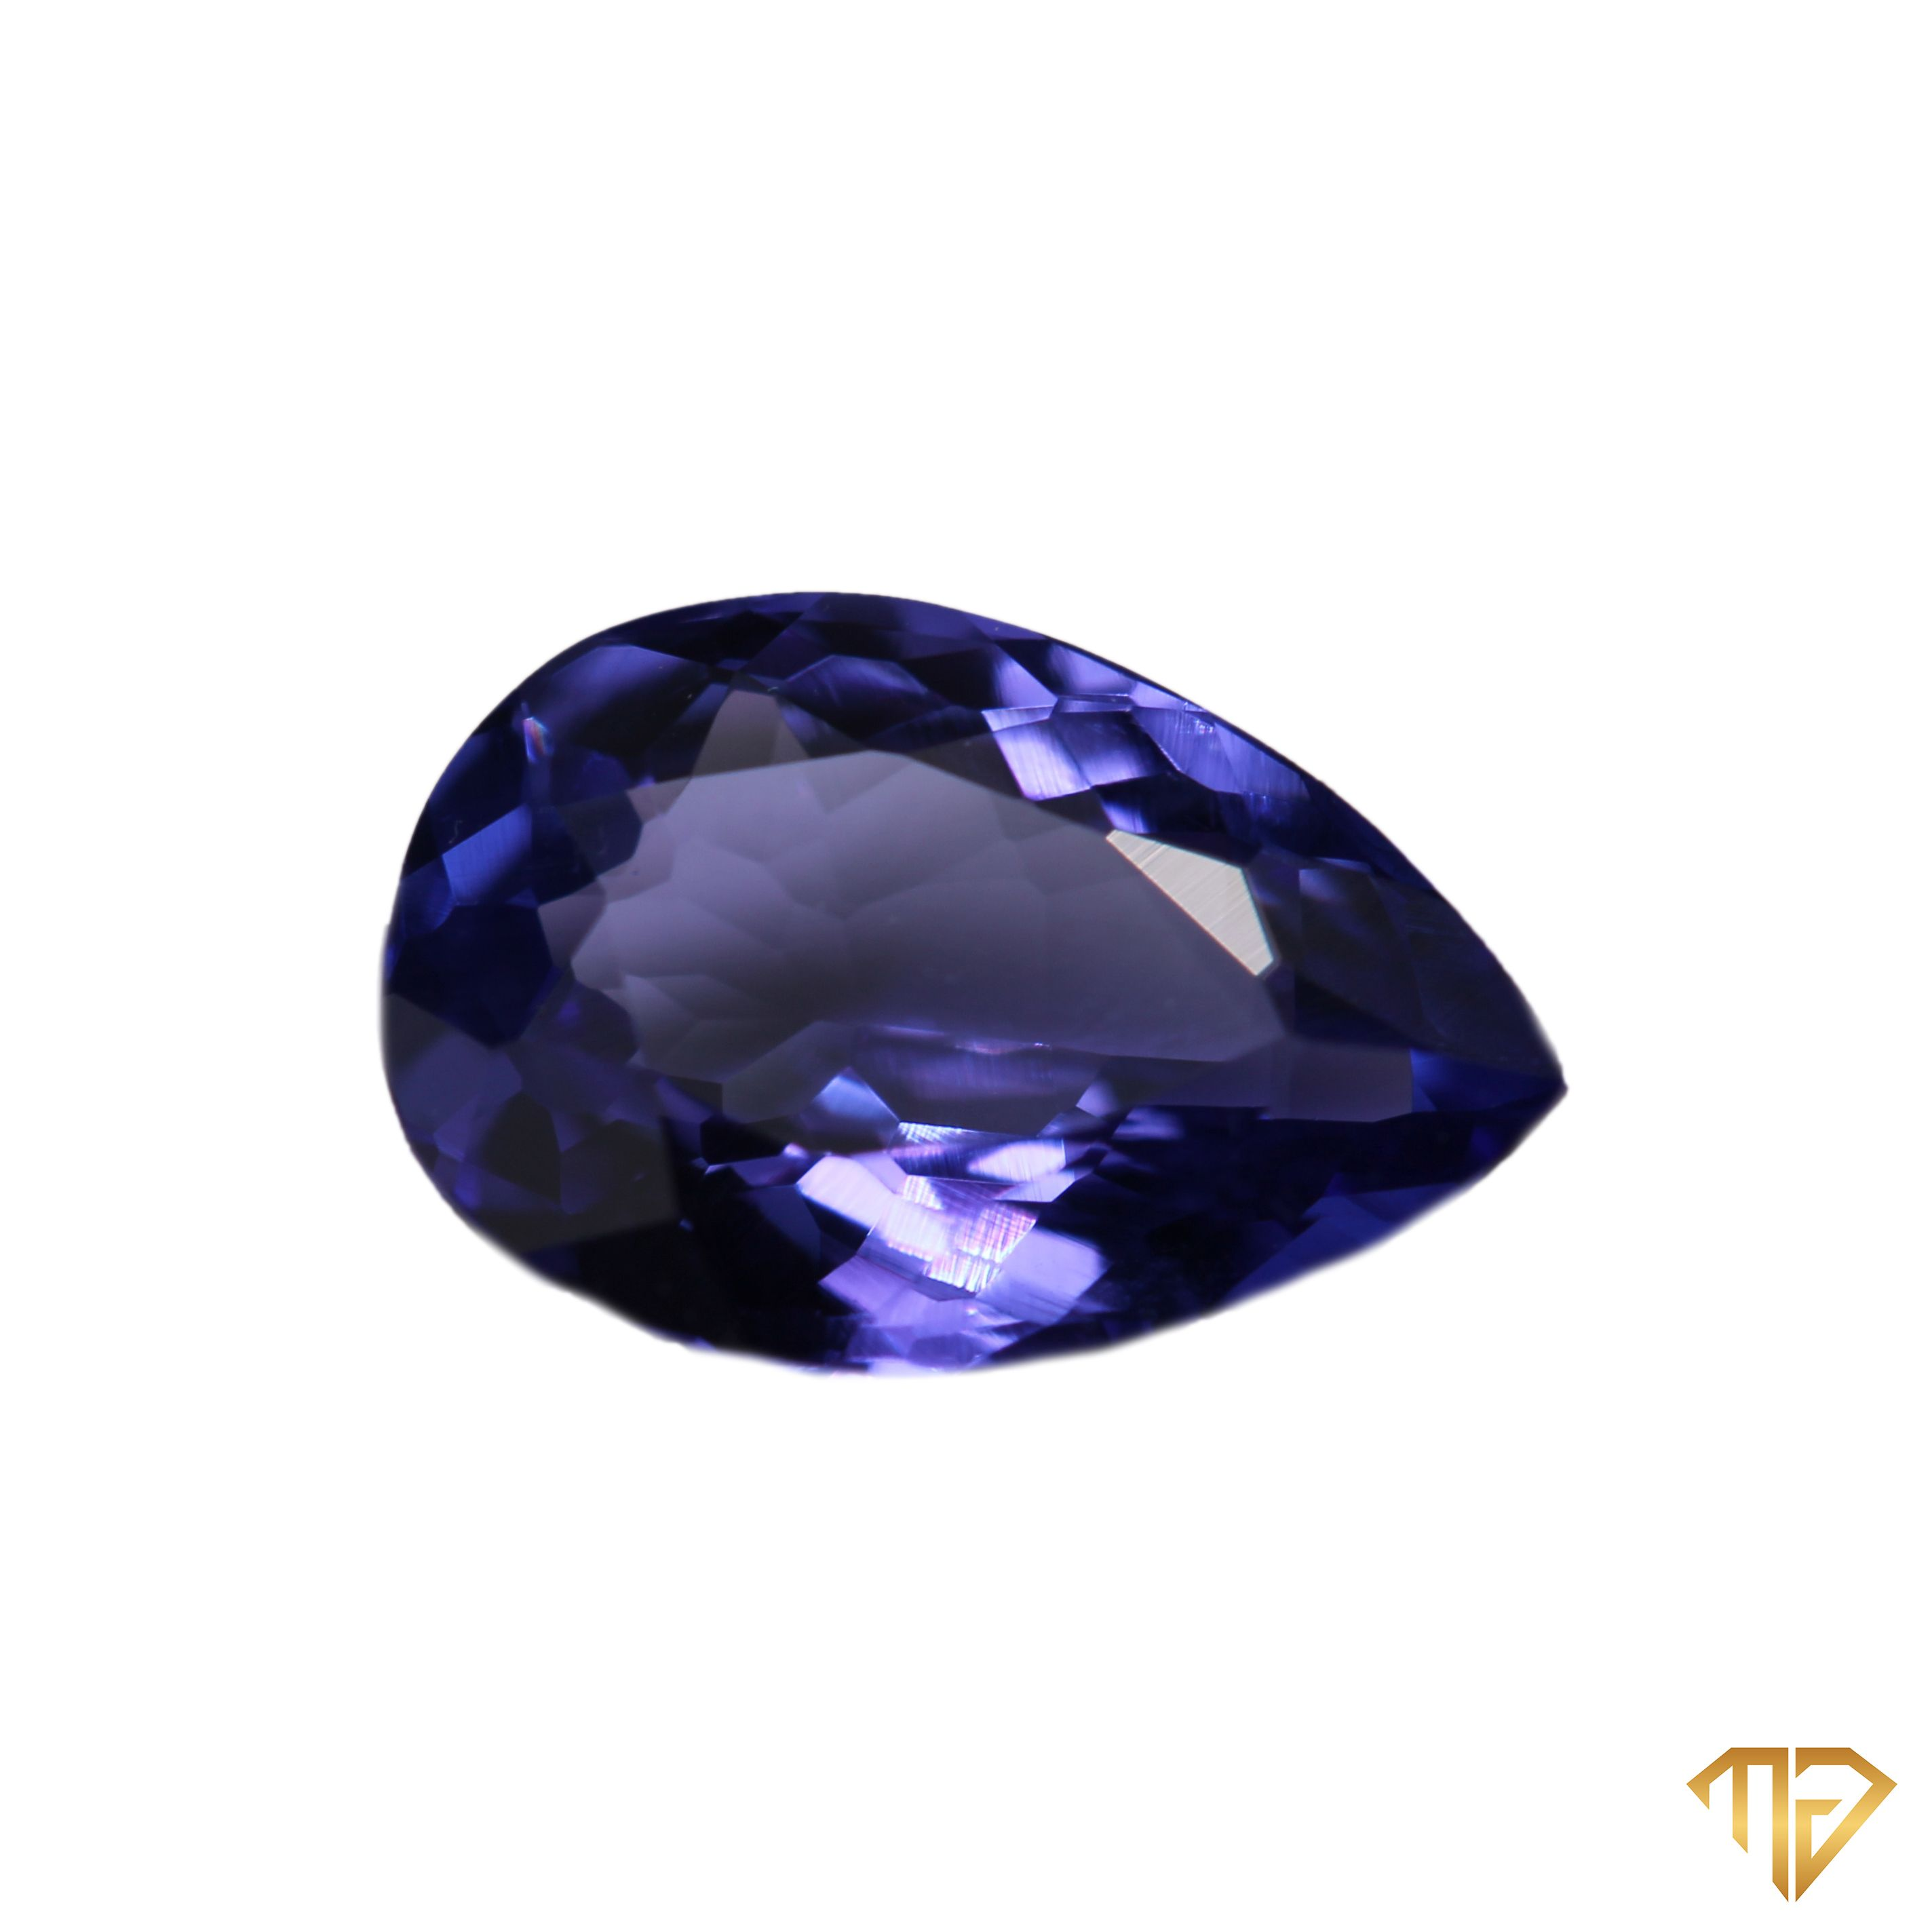 carat colonial tanzanite gems products image gemstone amazing